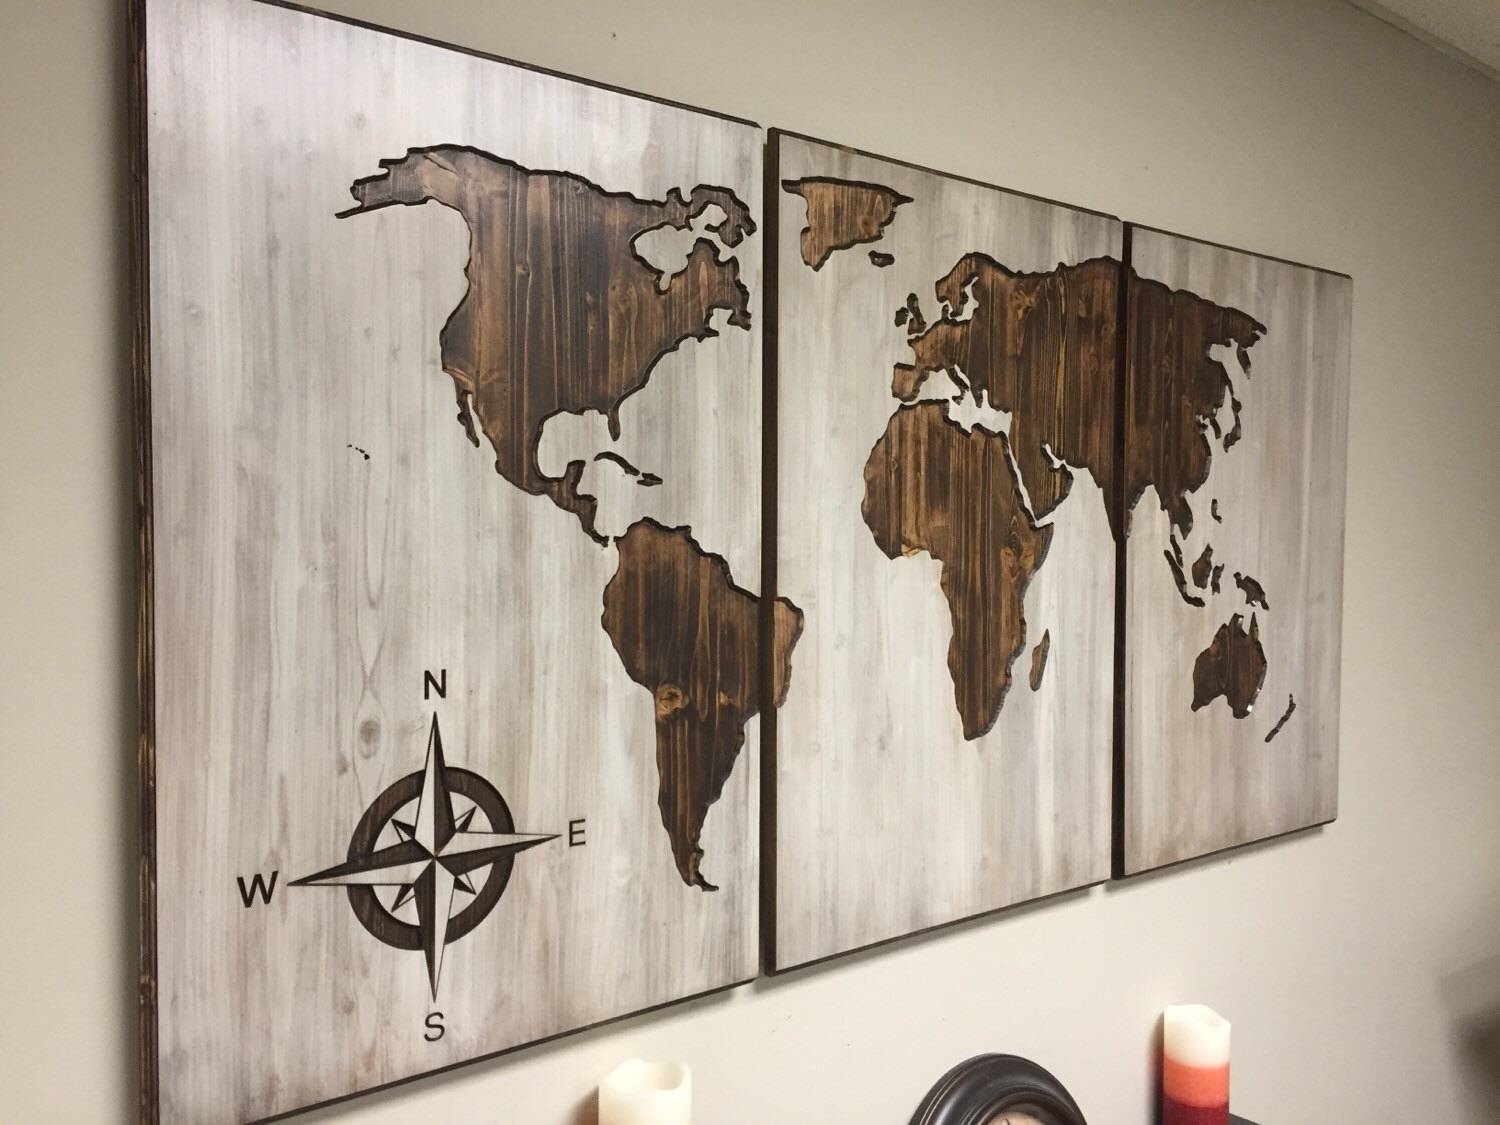 World Map Wood Wall Art Carved Custom Home Decor Wooden Best Of Intended For Most Up To Date Custom Map Wall Art (View 17 of 20)